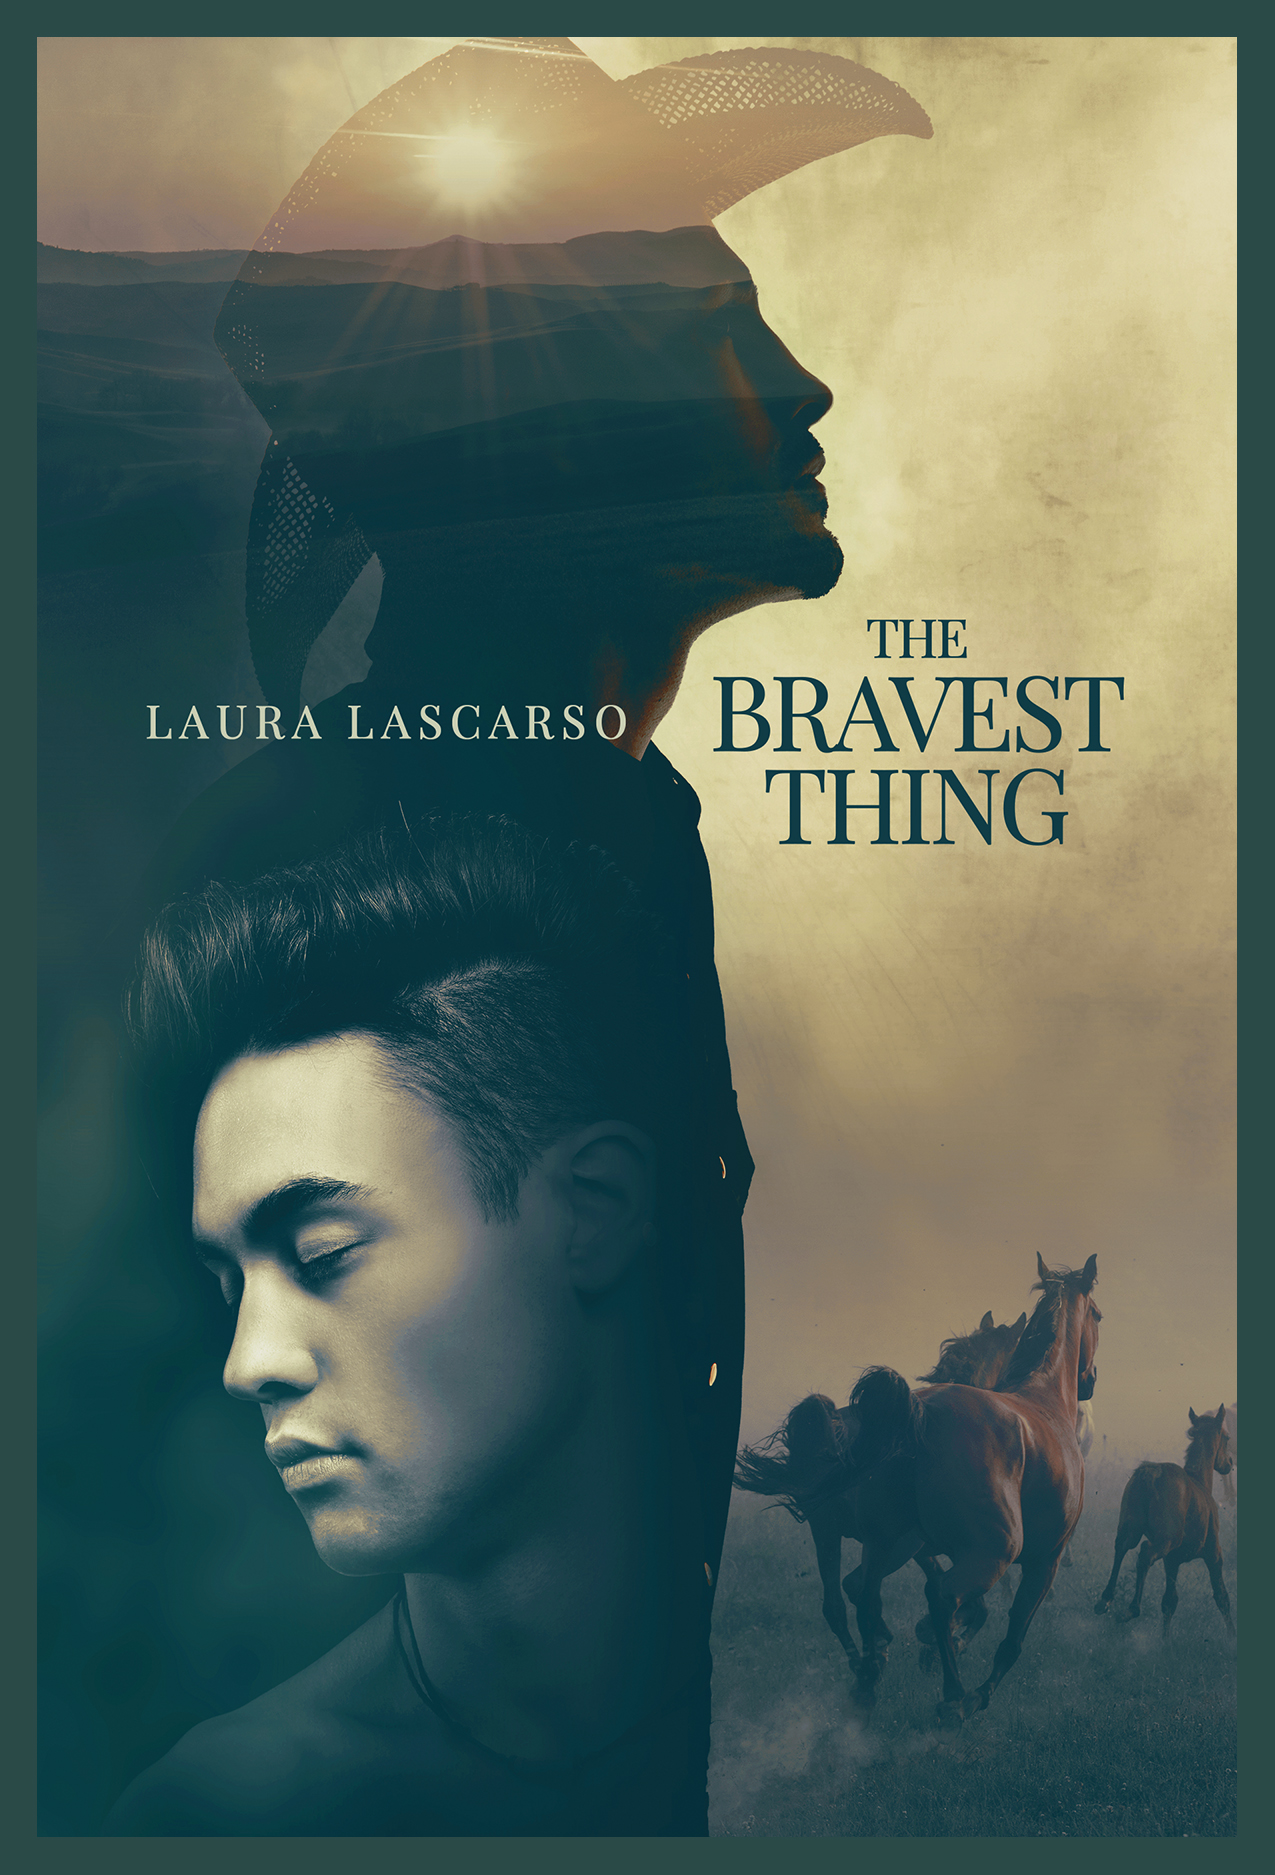 The Bravest Thing by Laura Lascarso